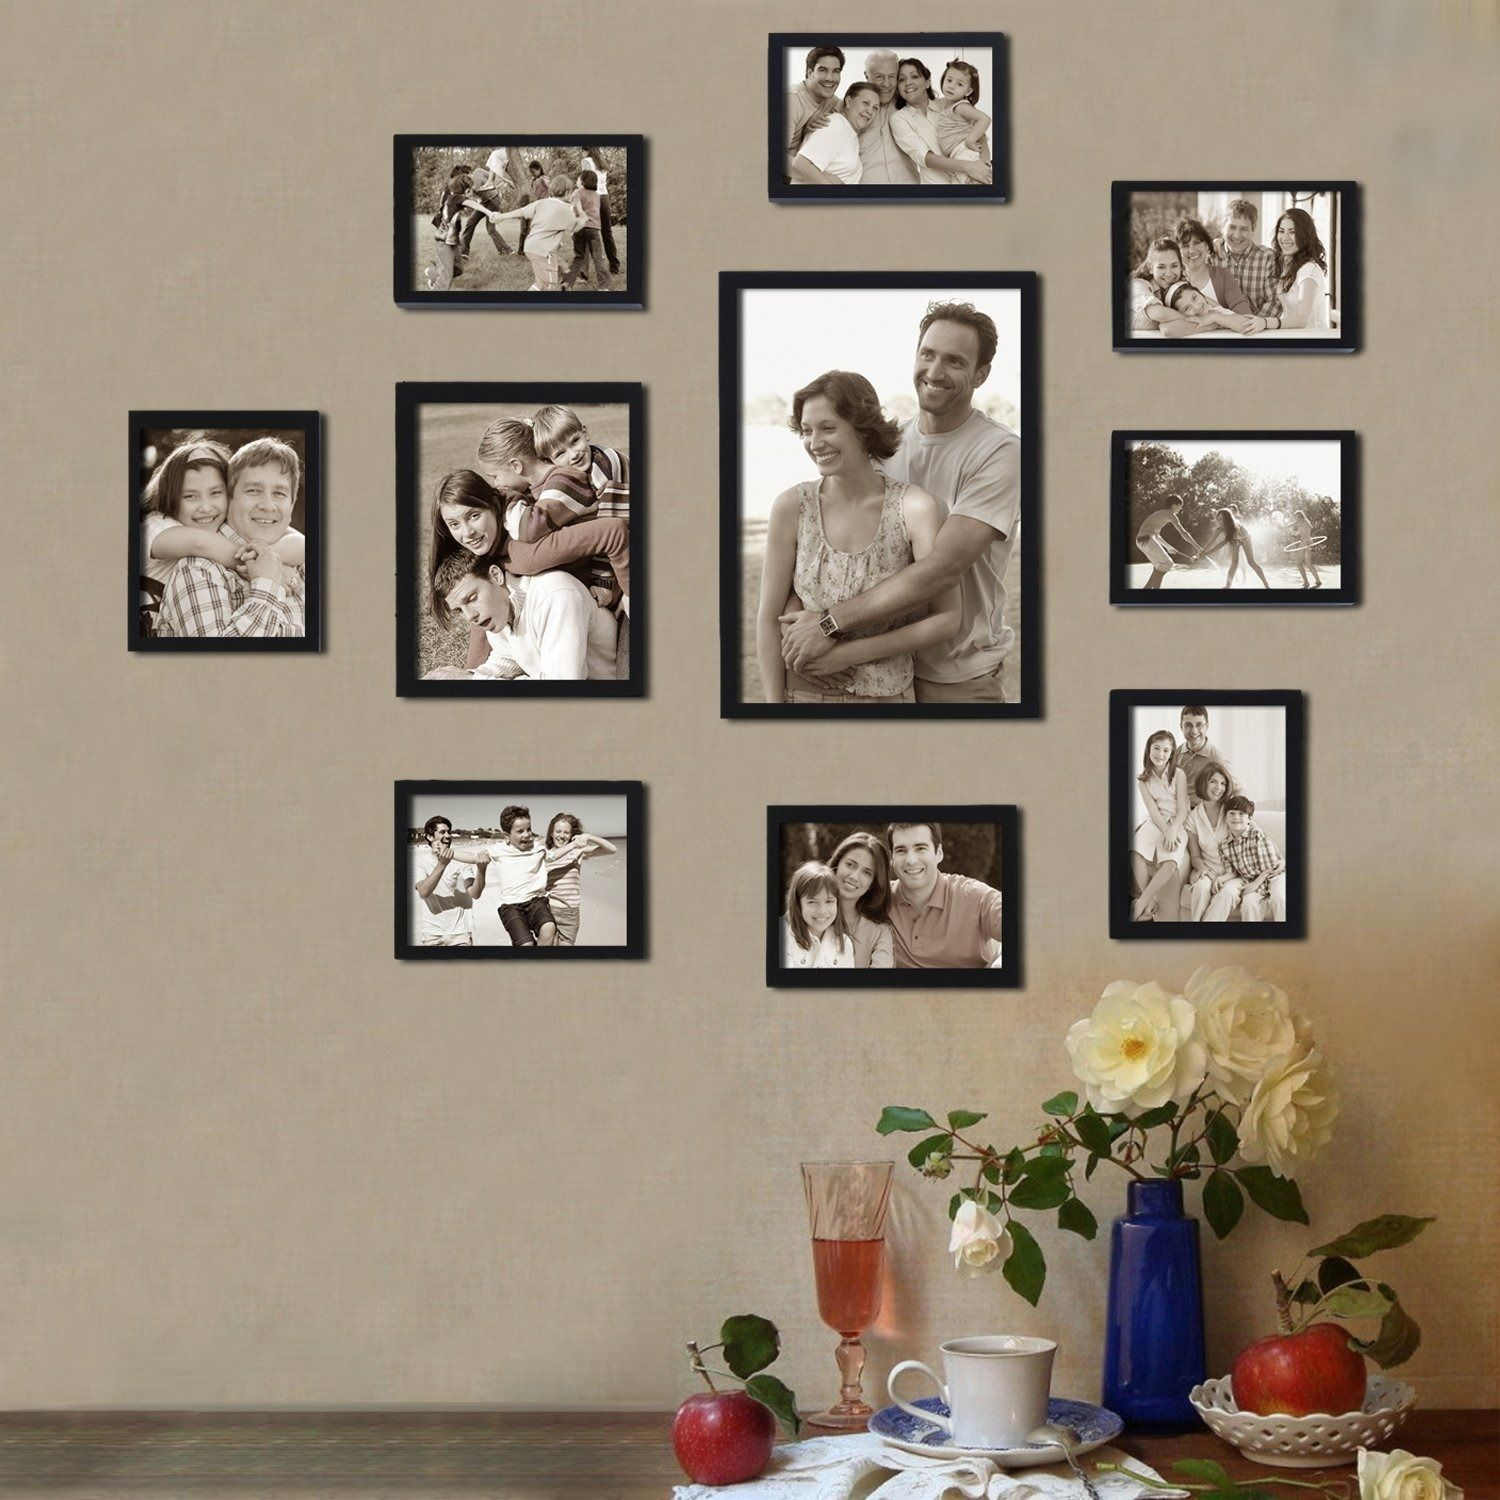 Adeco Decorative Black Wood 10 Piece Photo Frame Set For 8 4 X 6 Inch 1 6 X 8 Inch And 1 8 X 12 Inch Pictures Wedding Picture Walls Hanging Table Frame